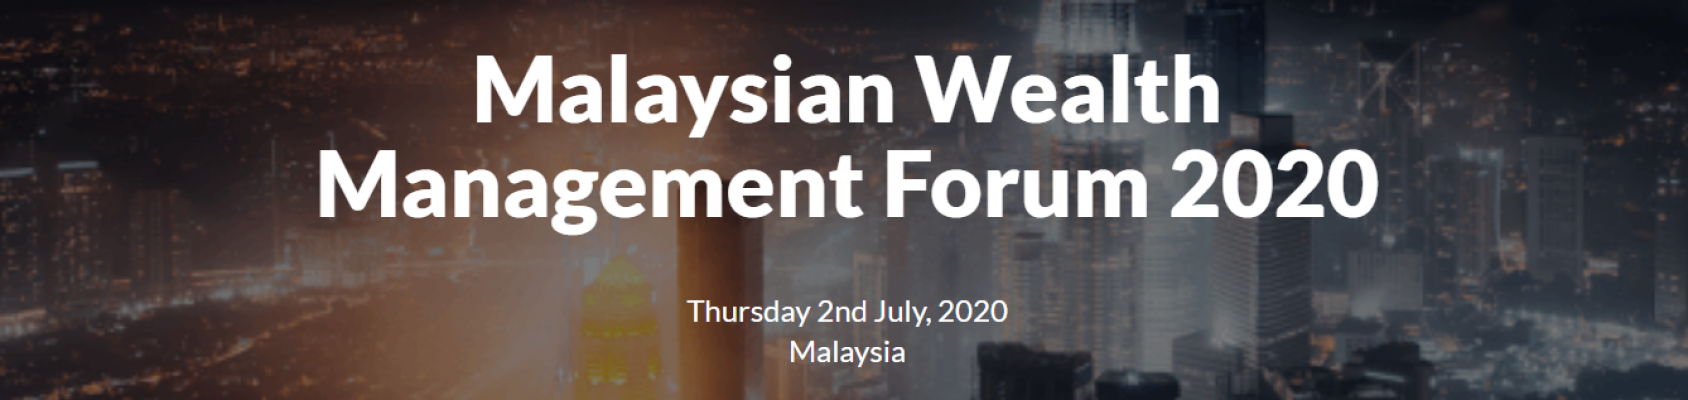 Malaysian Wealth Management Forum